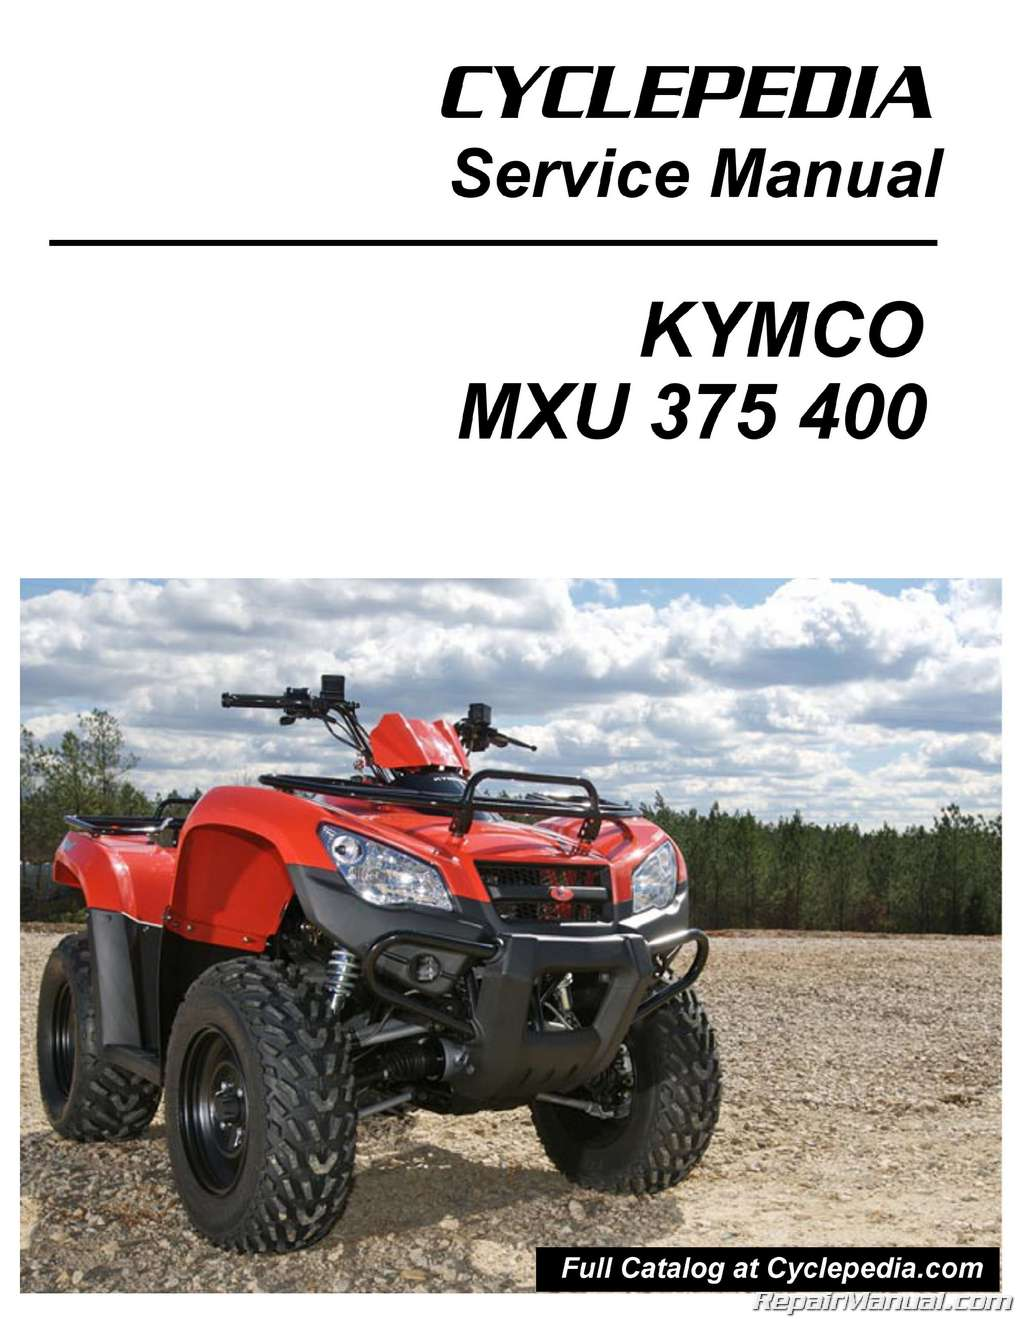 kymco mxu 375 400 atv service manual printed by cyclepedia rh repairmanual com service manual atwood 8940-iii dclp furnace service manual advance bed